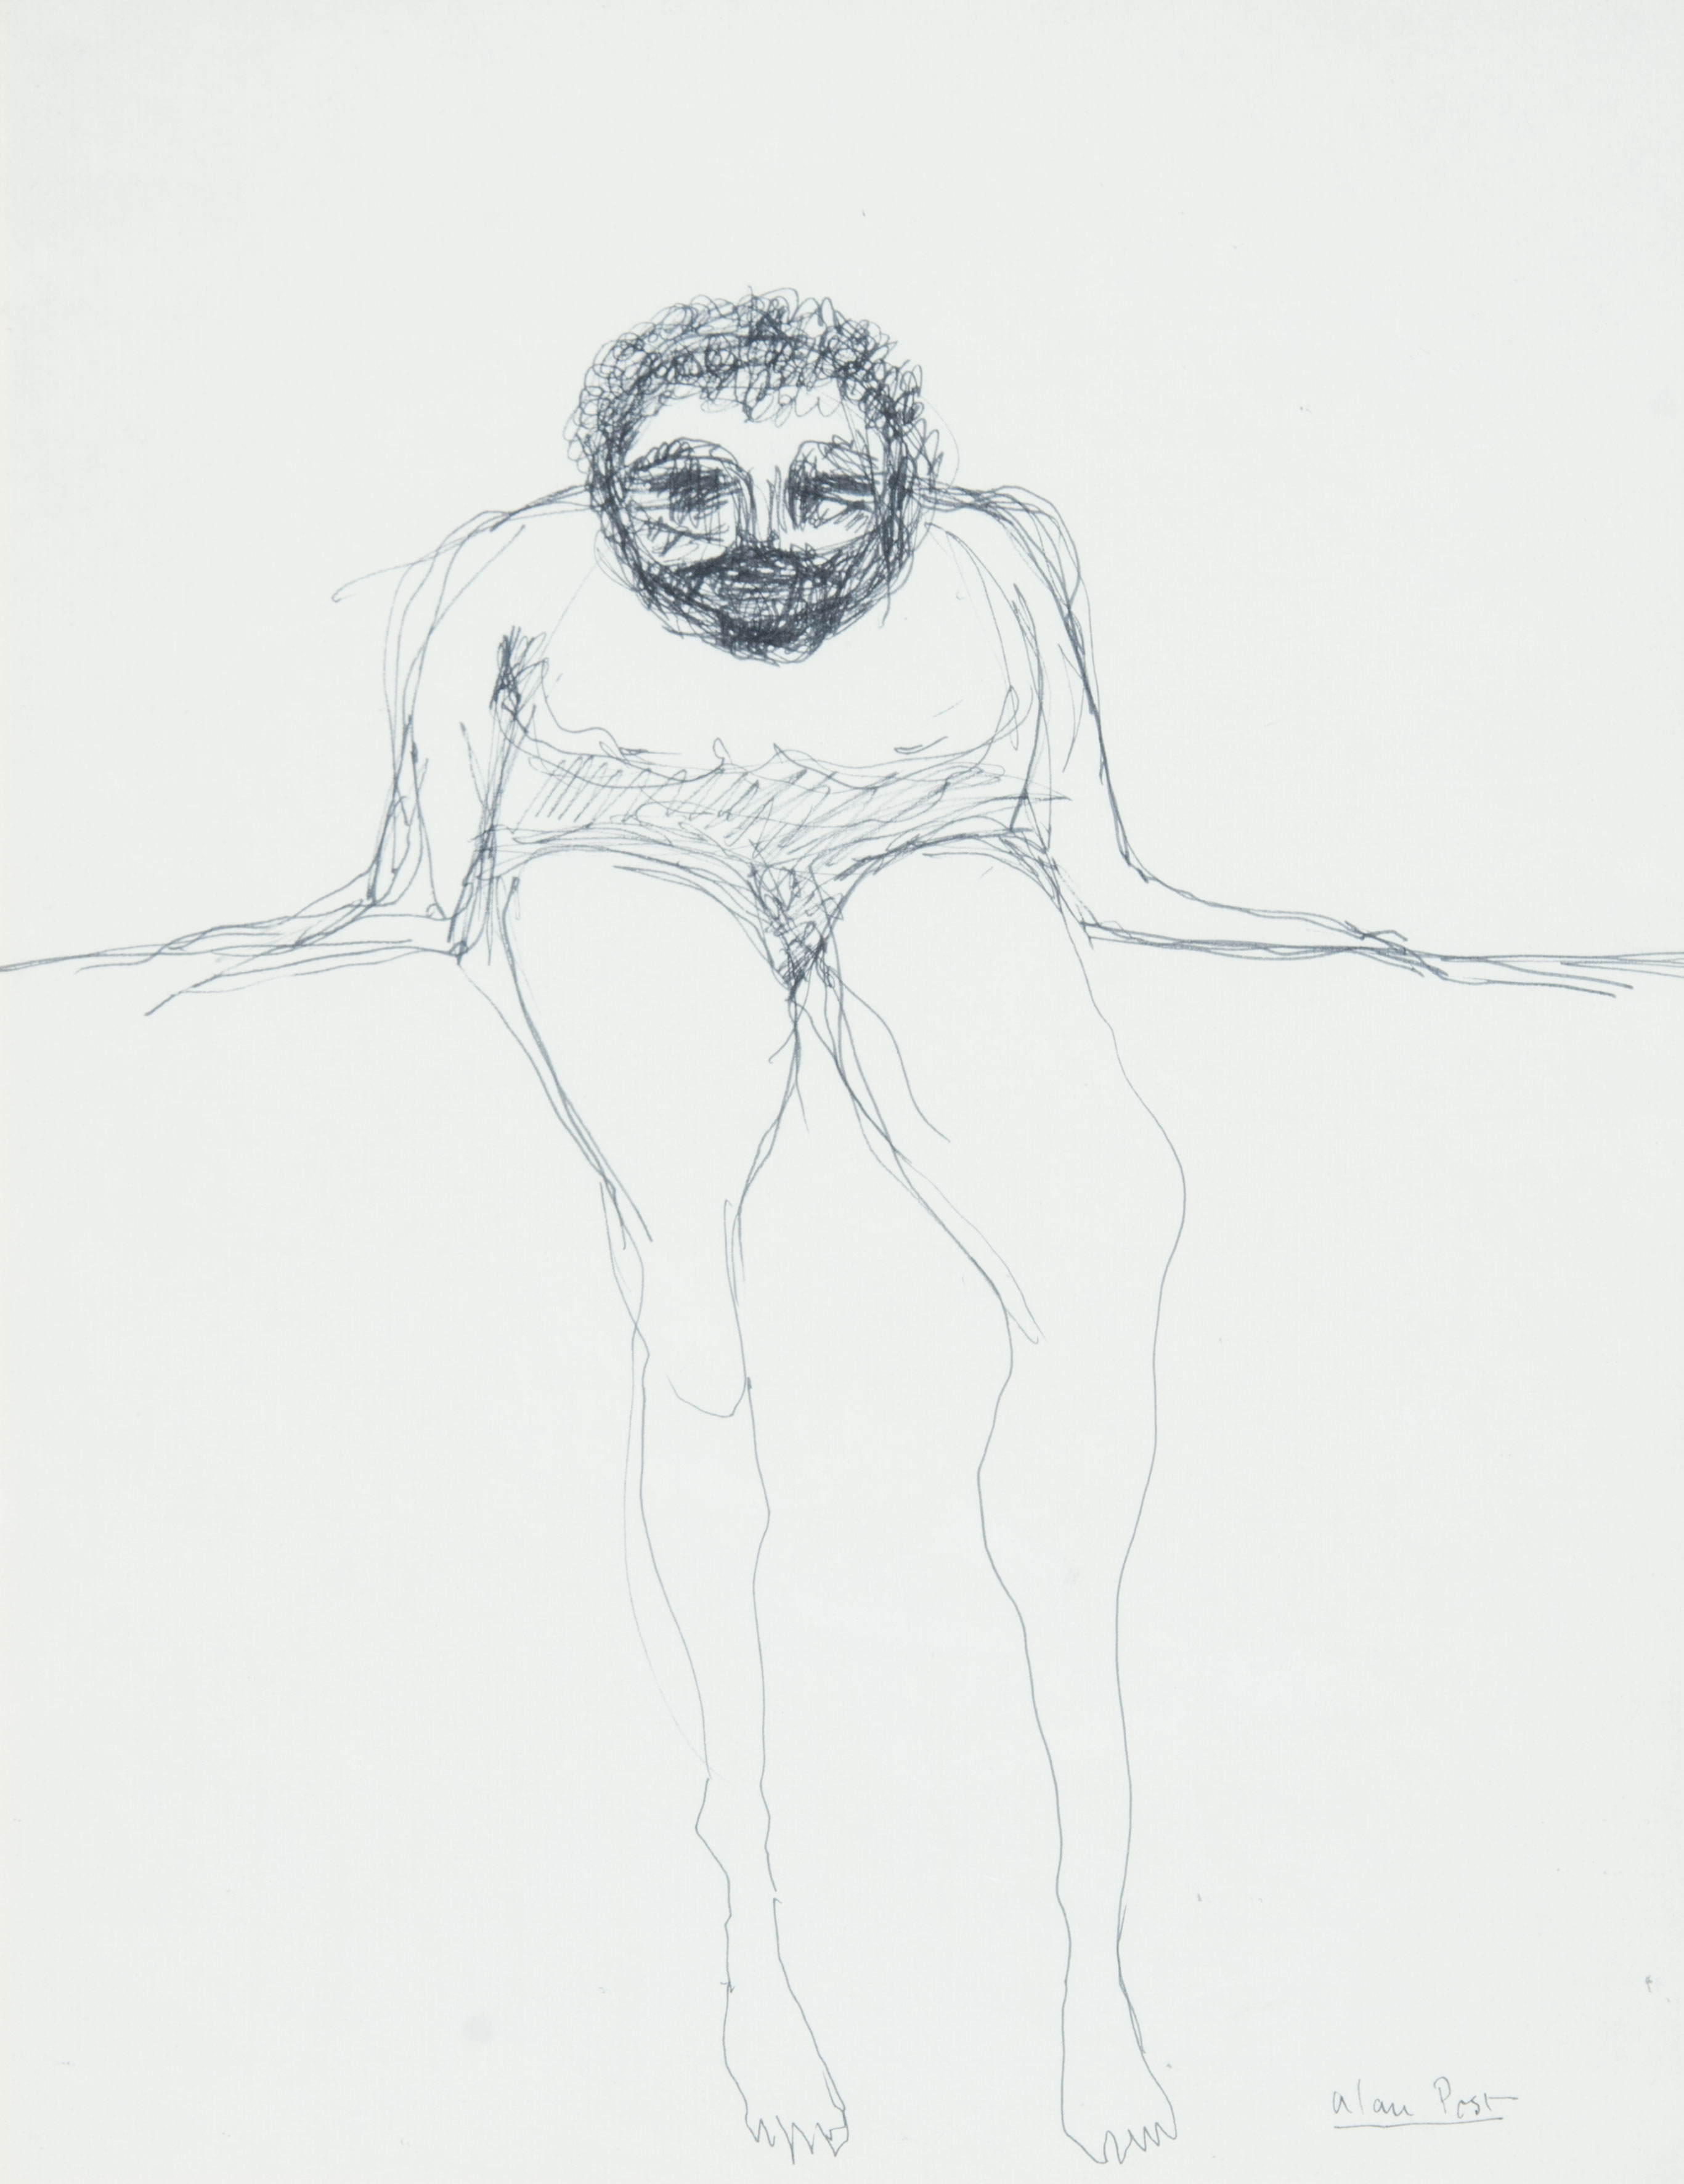 Alan Post, Seated Bearded Figure, c. 1970